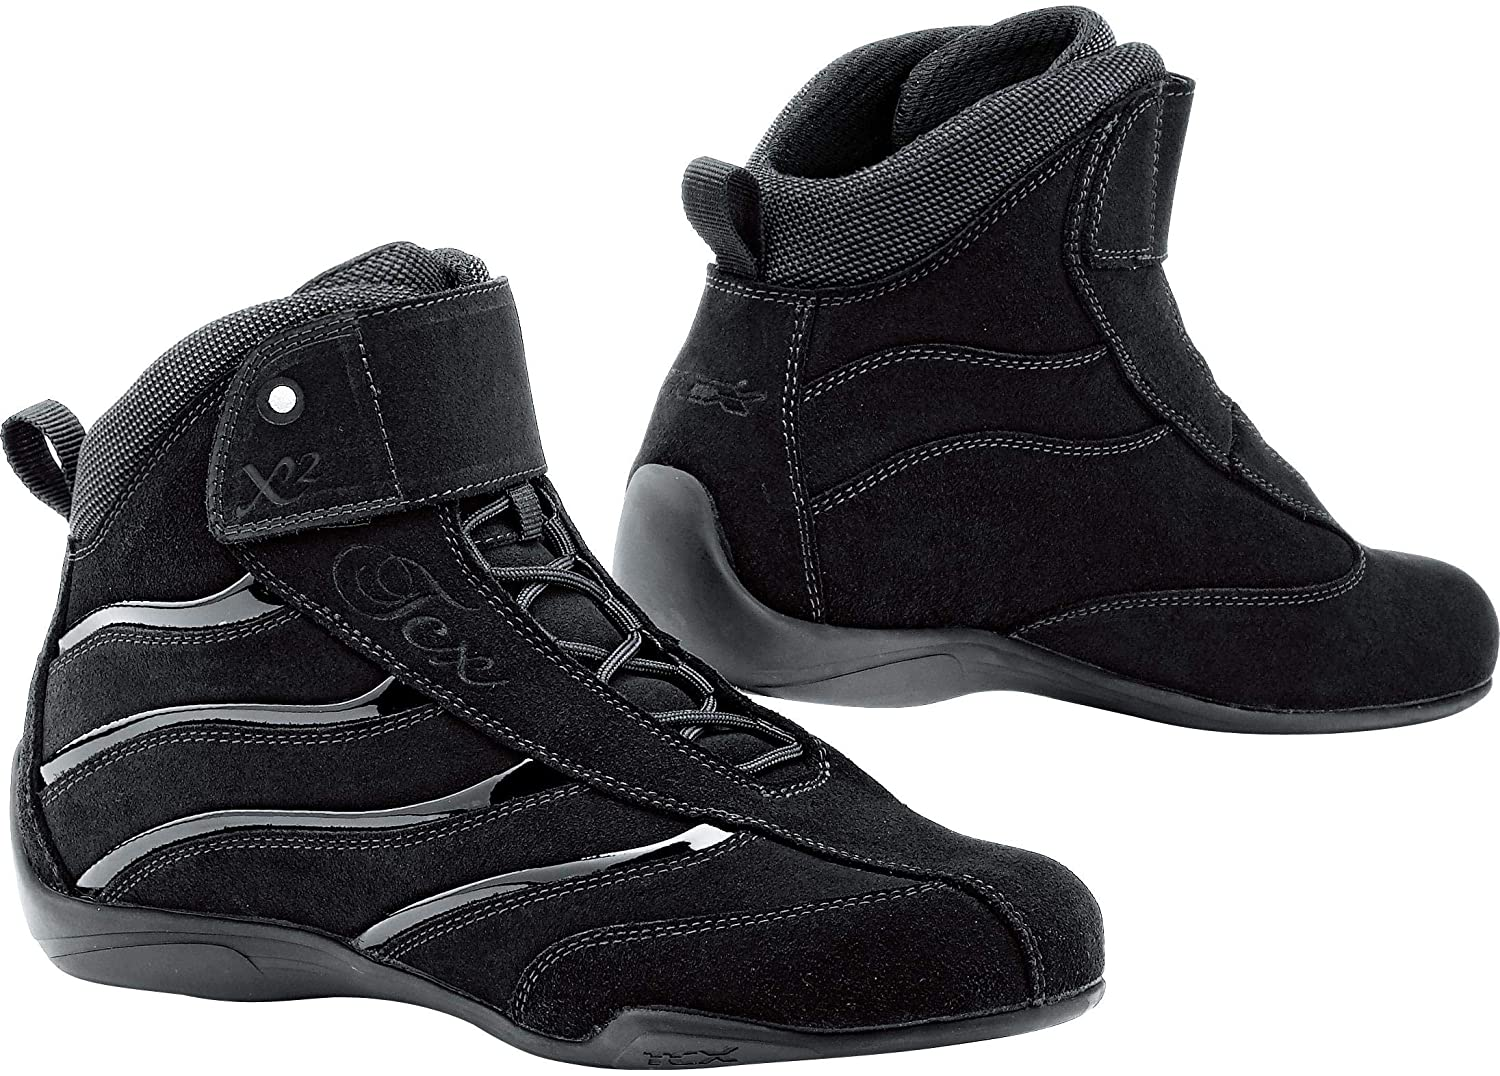 TCX X-Square Lady Womens Street Motorcycle Boots - Black / 40